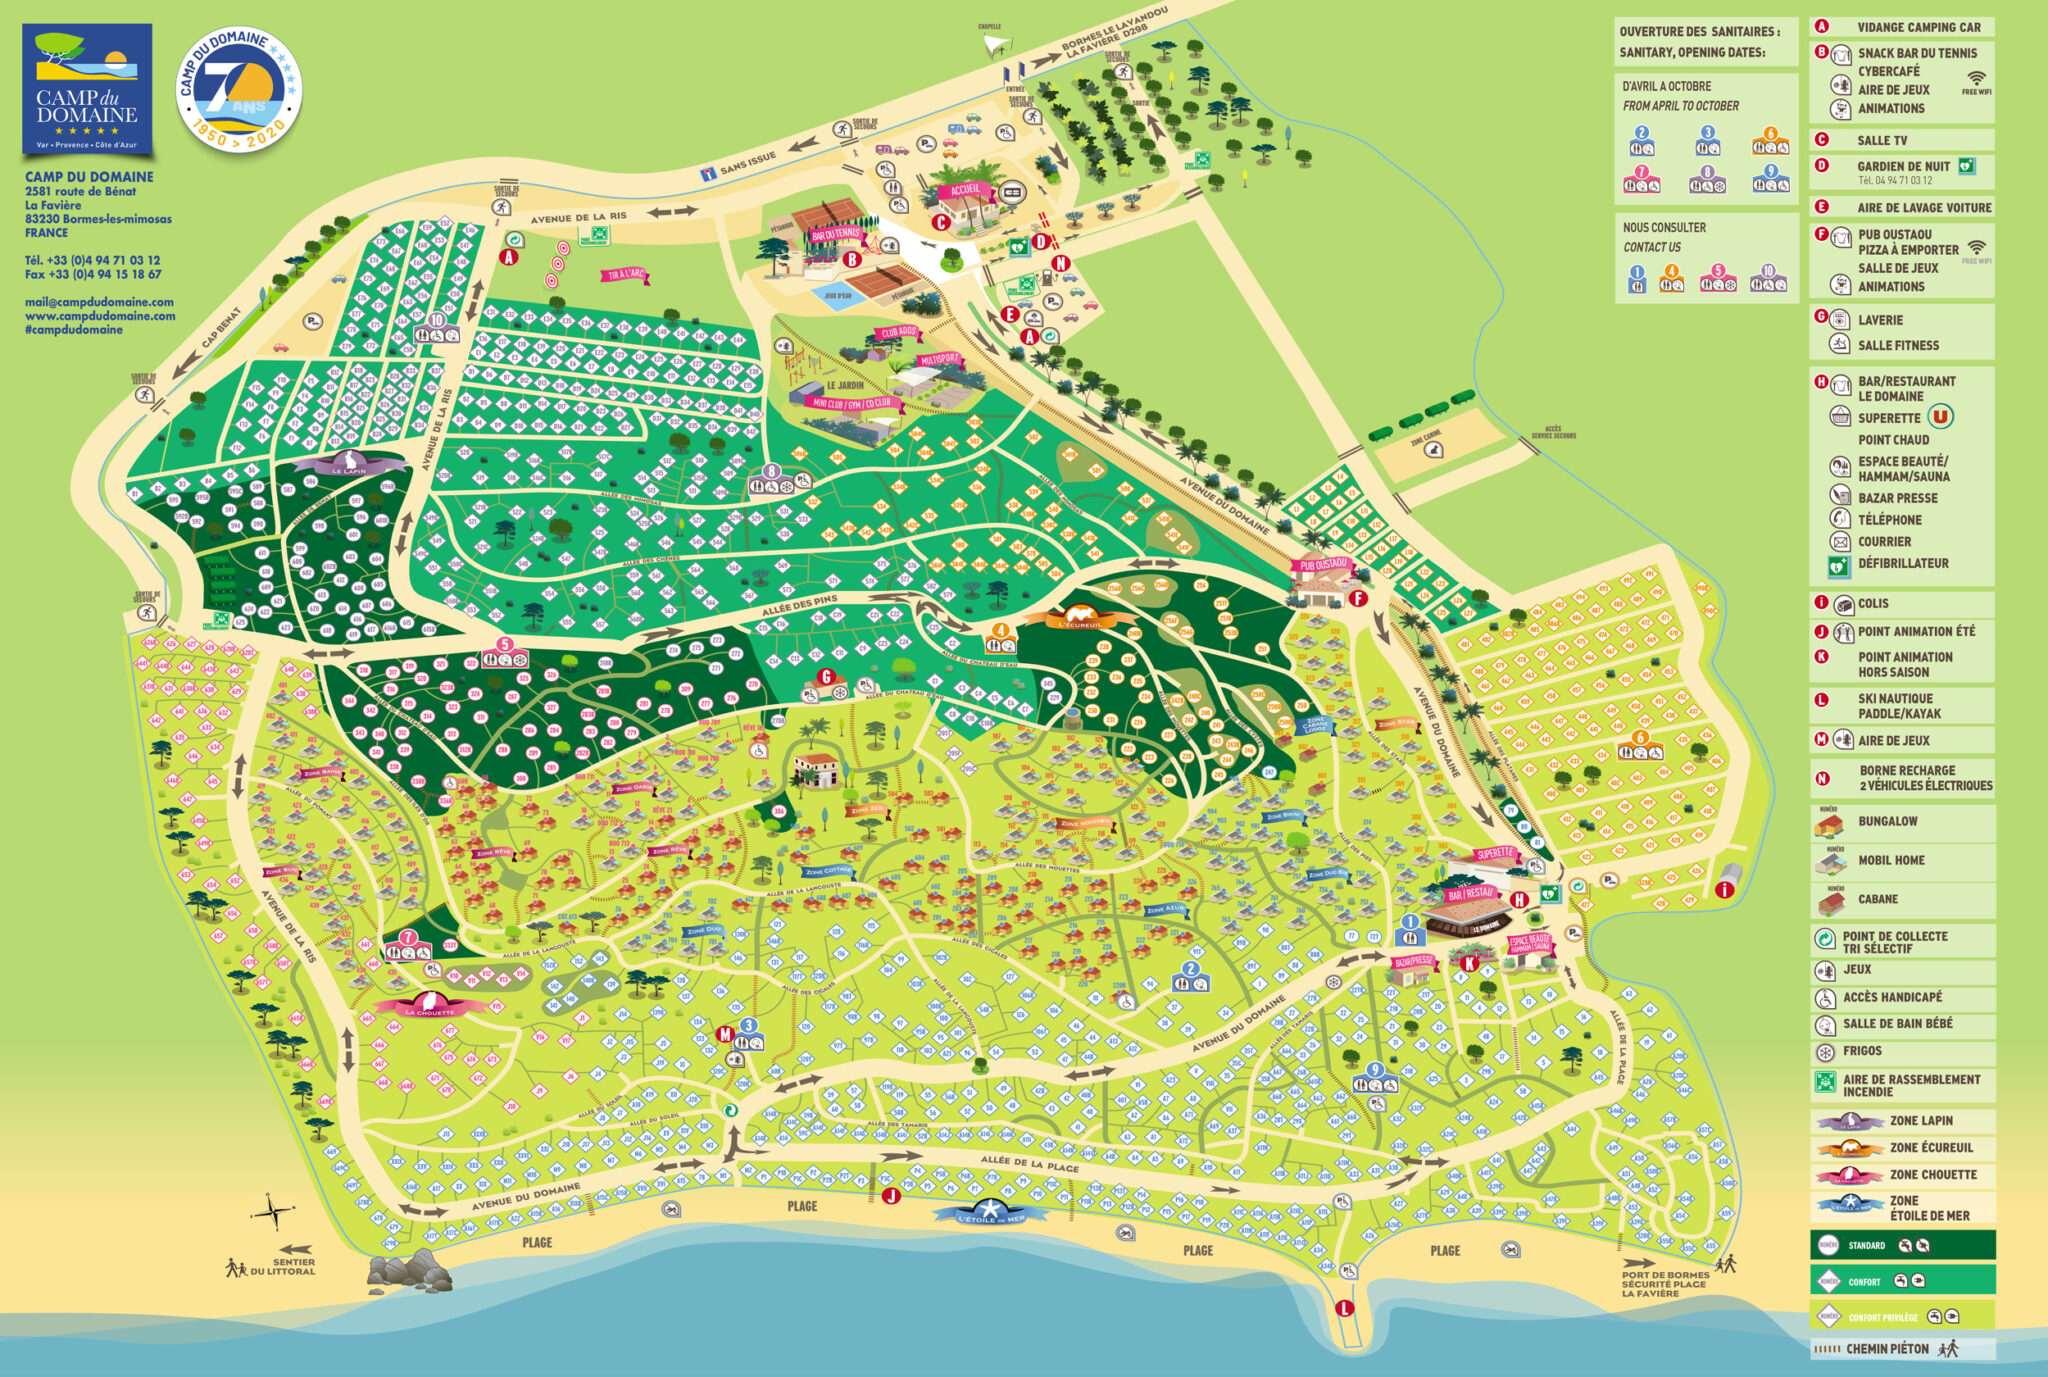 Plan 2020 Camping Camp du Domaine